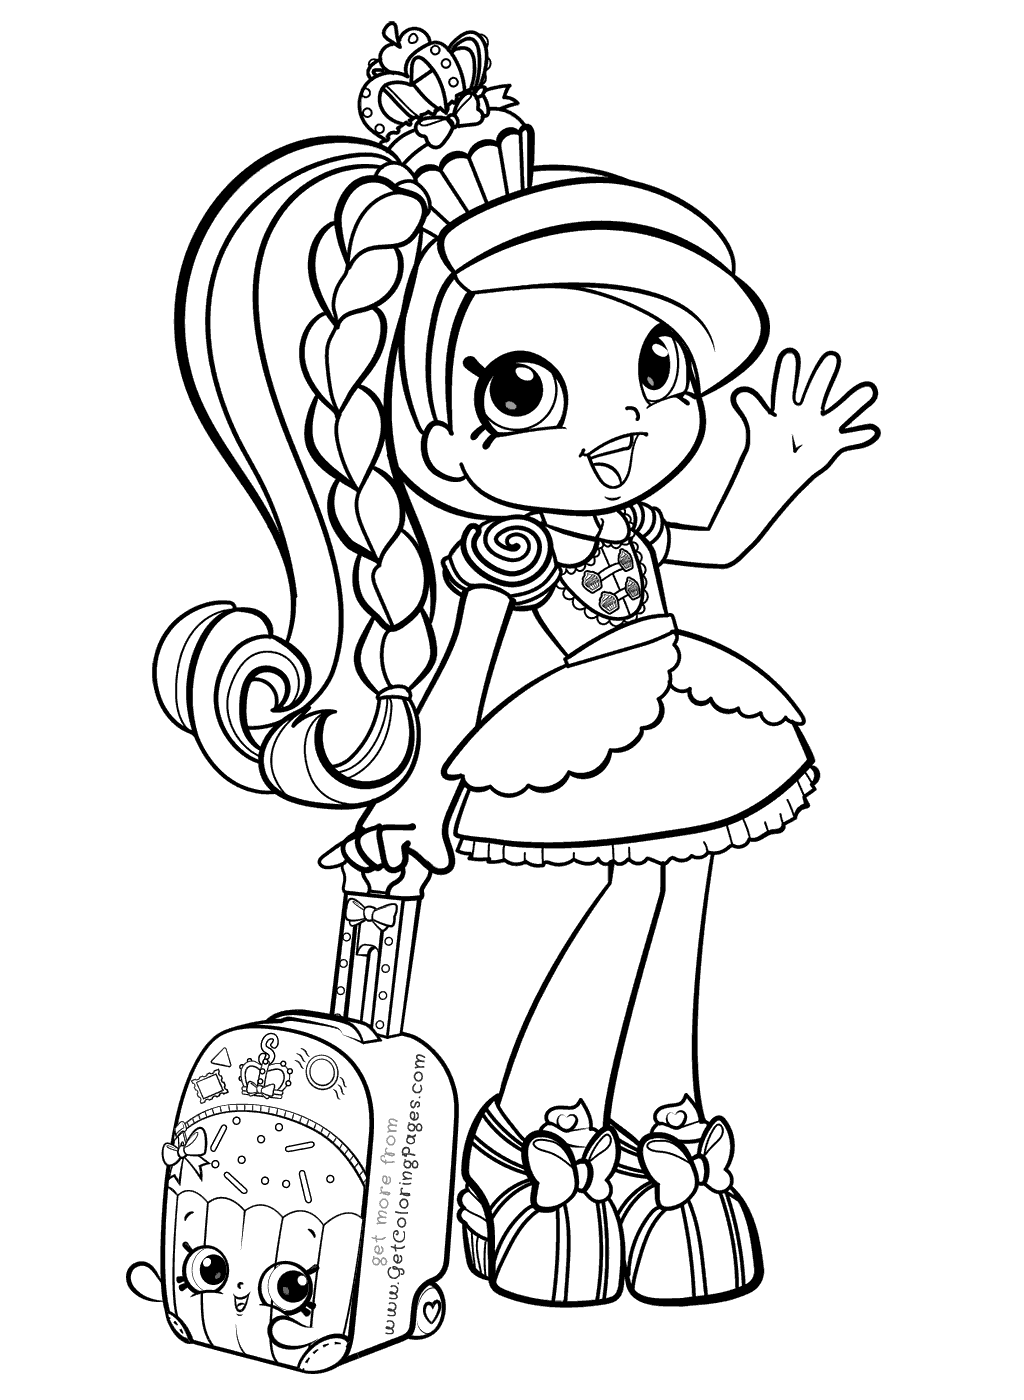 Coloring Rocks Shopkin Coloring Pages Shopkins Colouring Pages Cartoon Coloring Pages